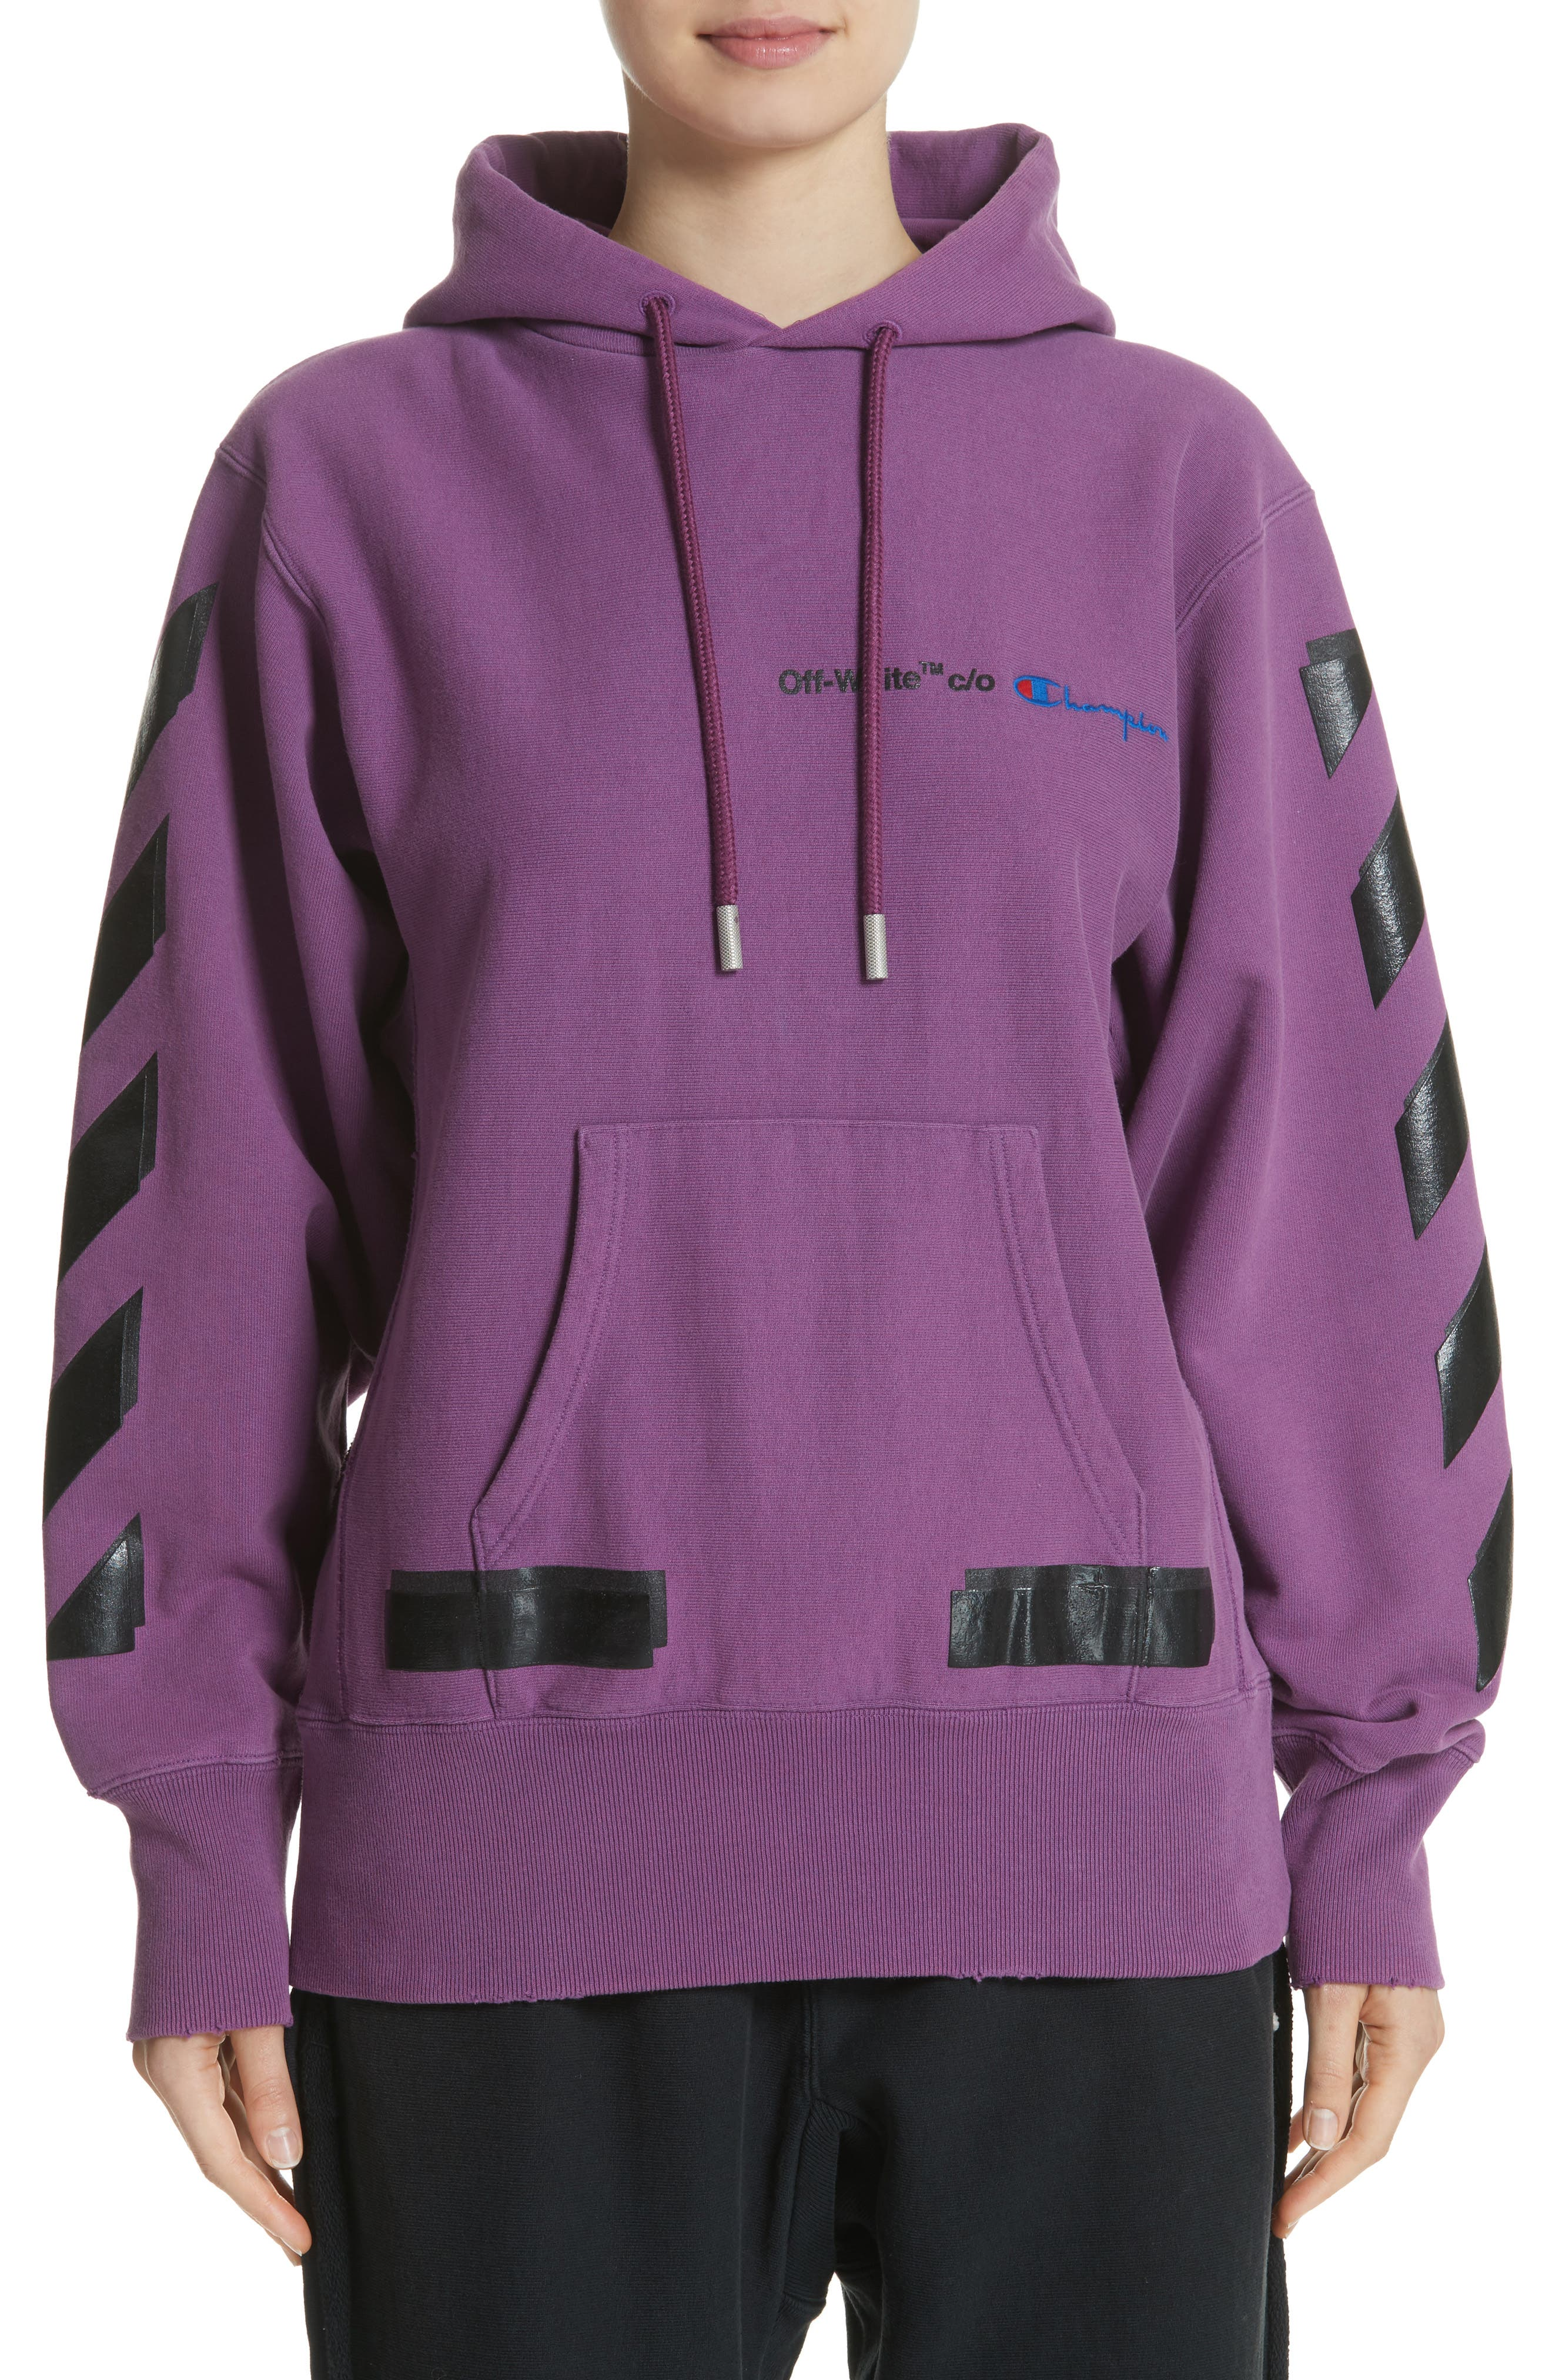 Off-White x Champion Pullover Hoodie